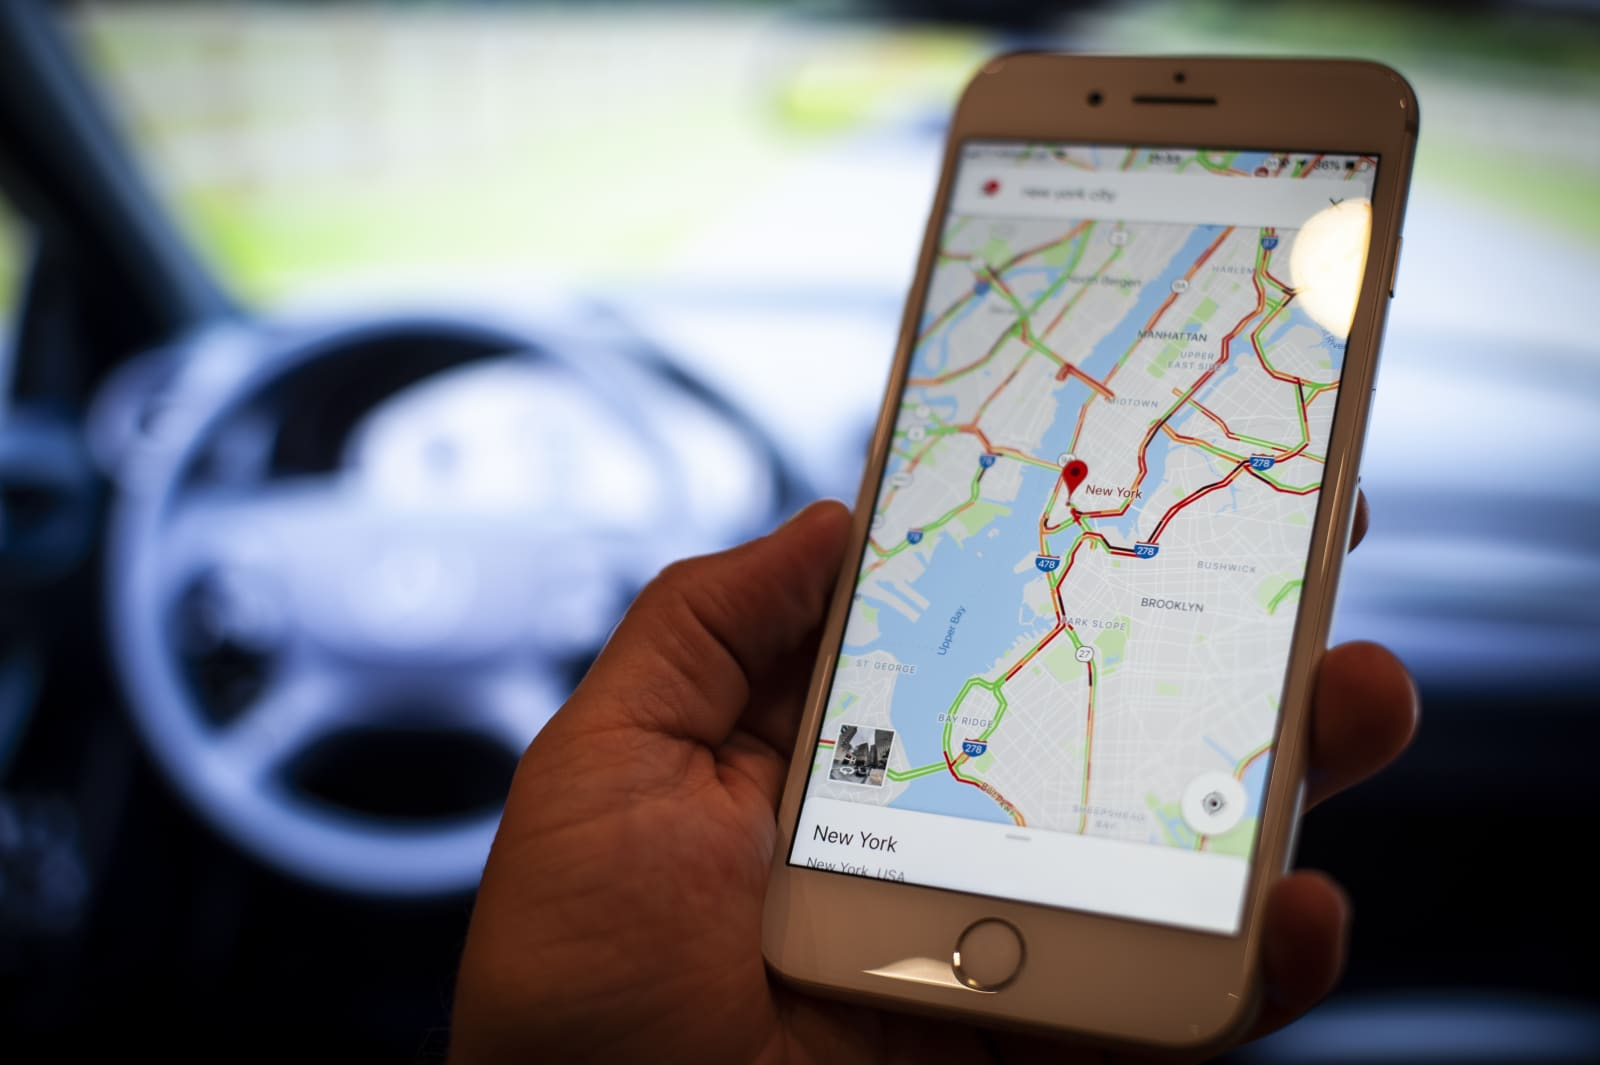 US carriers say they've stopped selling location data